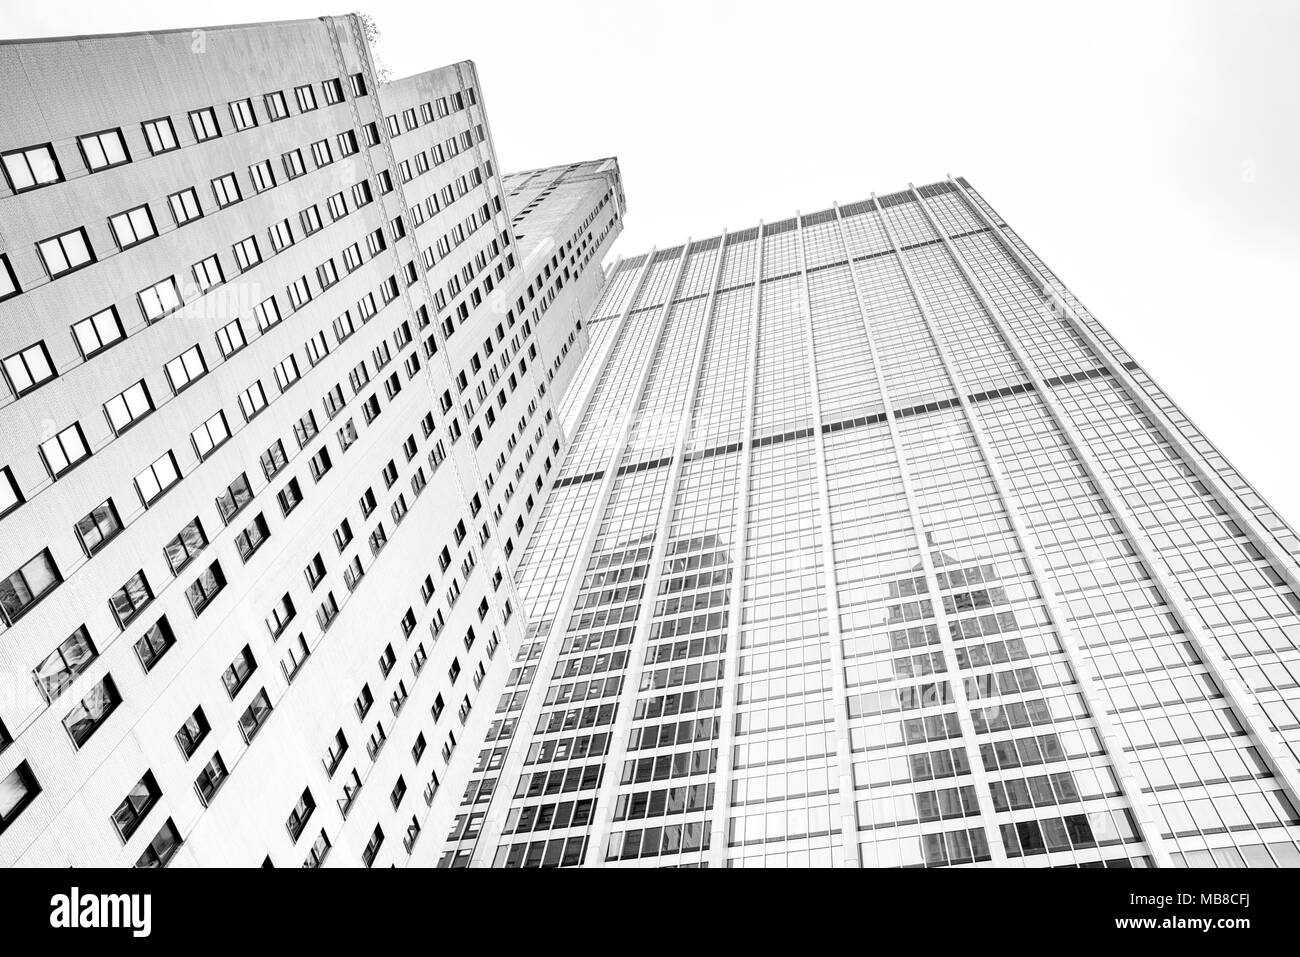 de6c1d84d95c two high rise buildings in NYC. Image is black and white Stock Photo ...